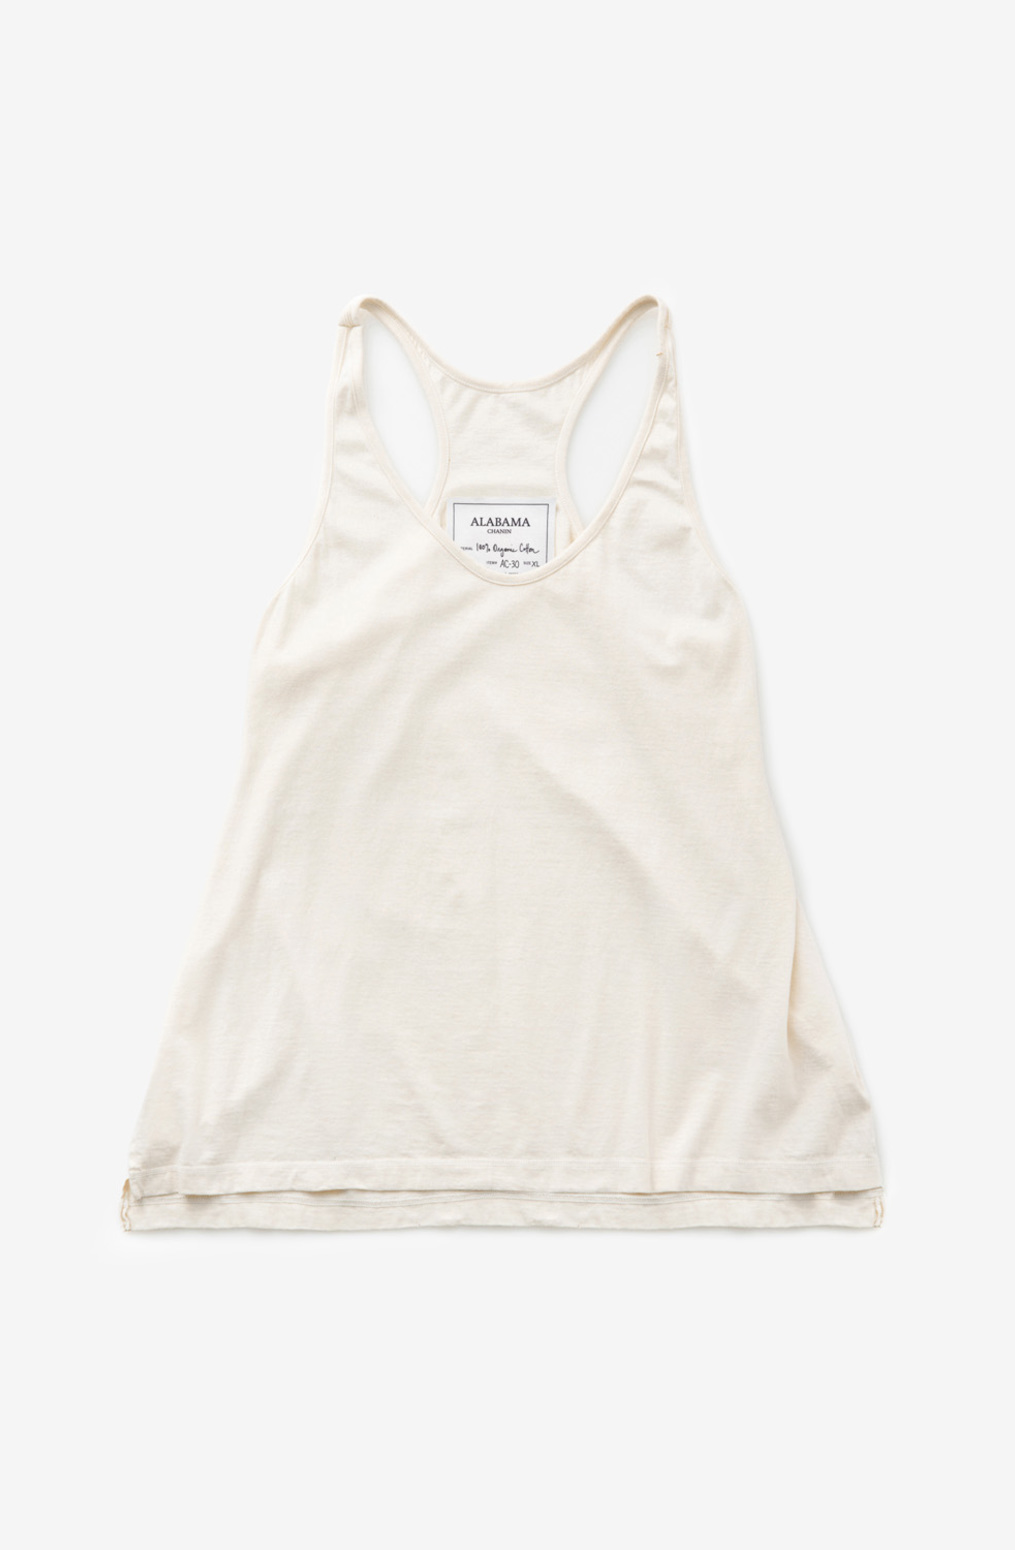 Alabama chanin womens organic cotton racerback tank